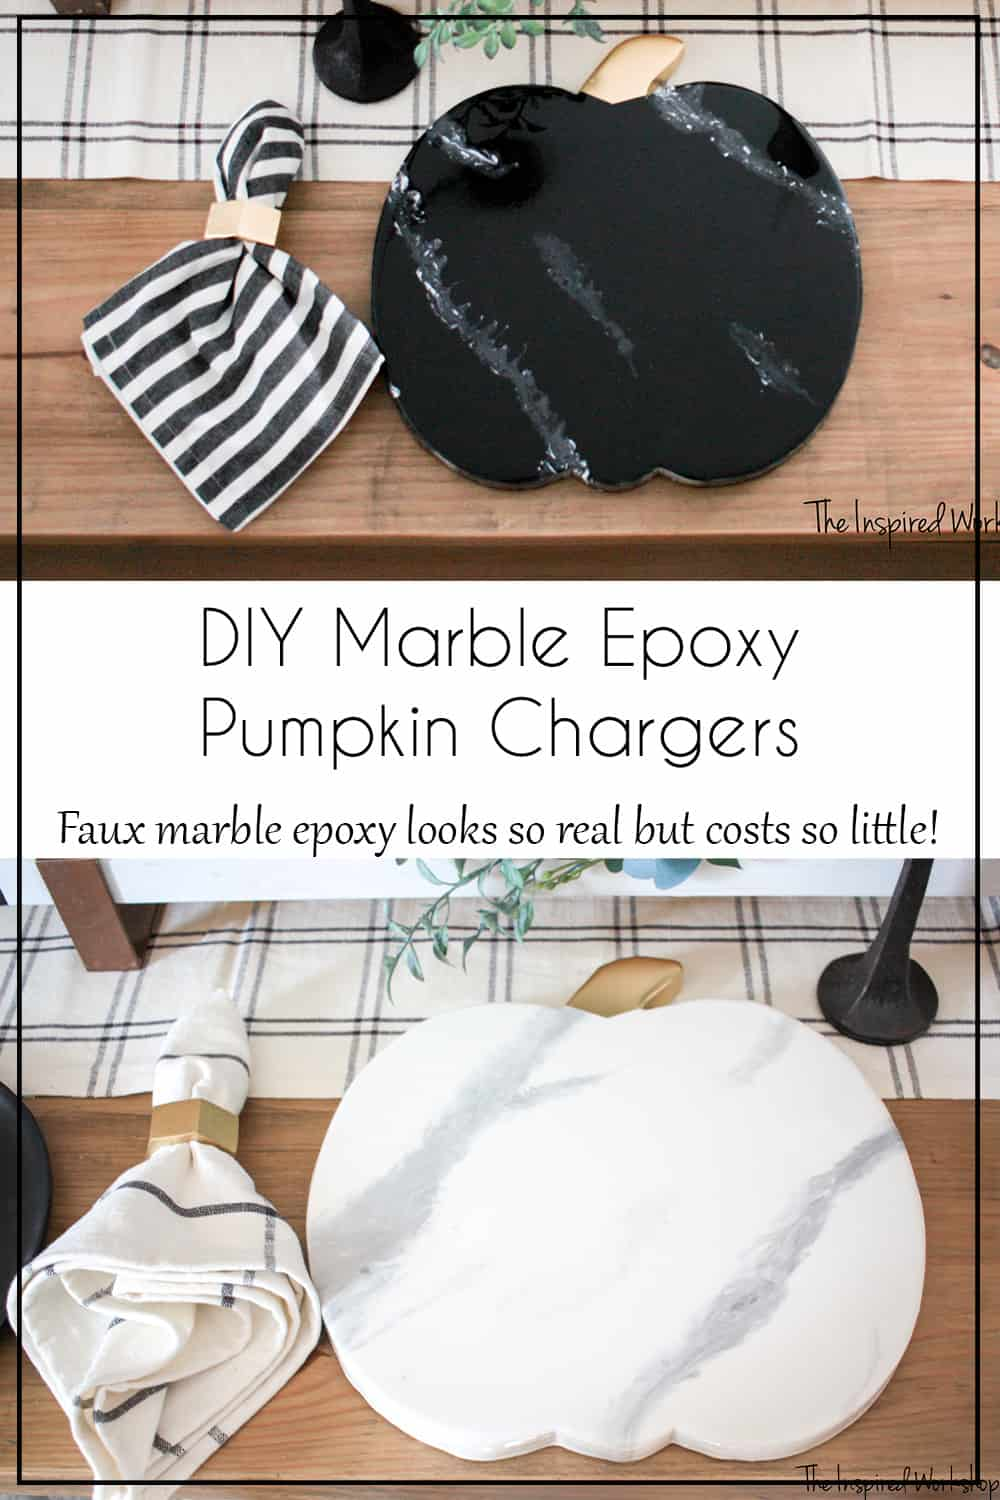 DIY Marble Epoxy Pumpkin Chargers